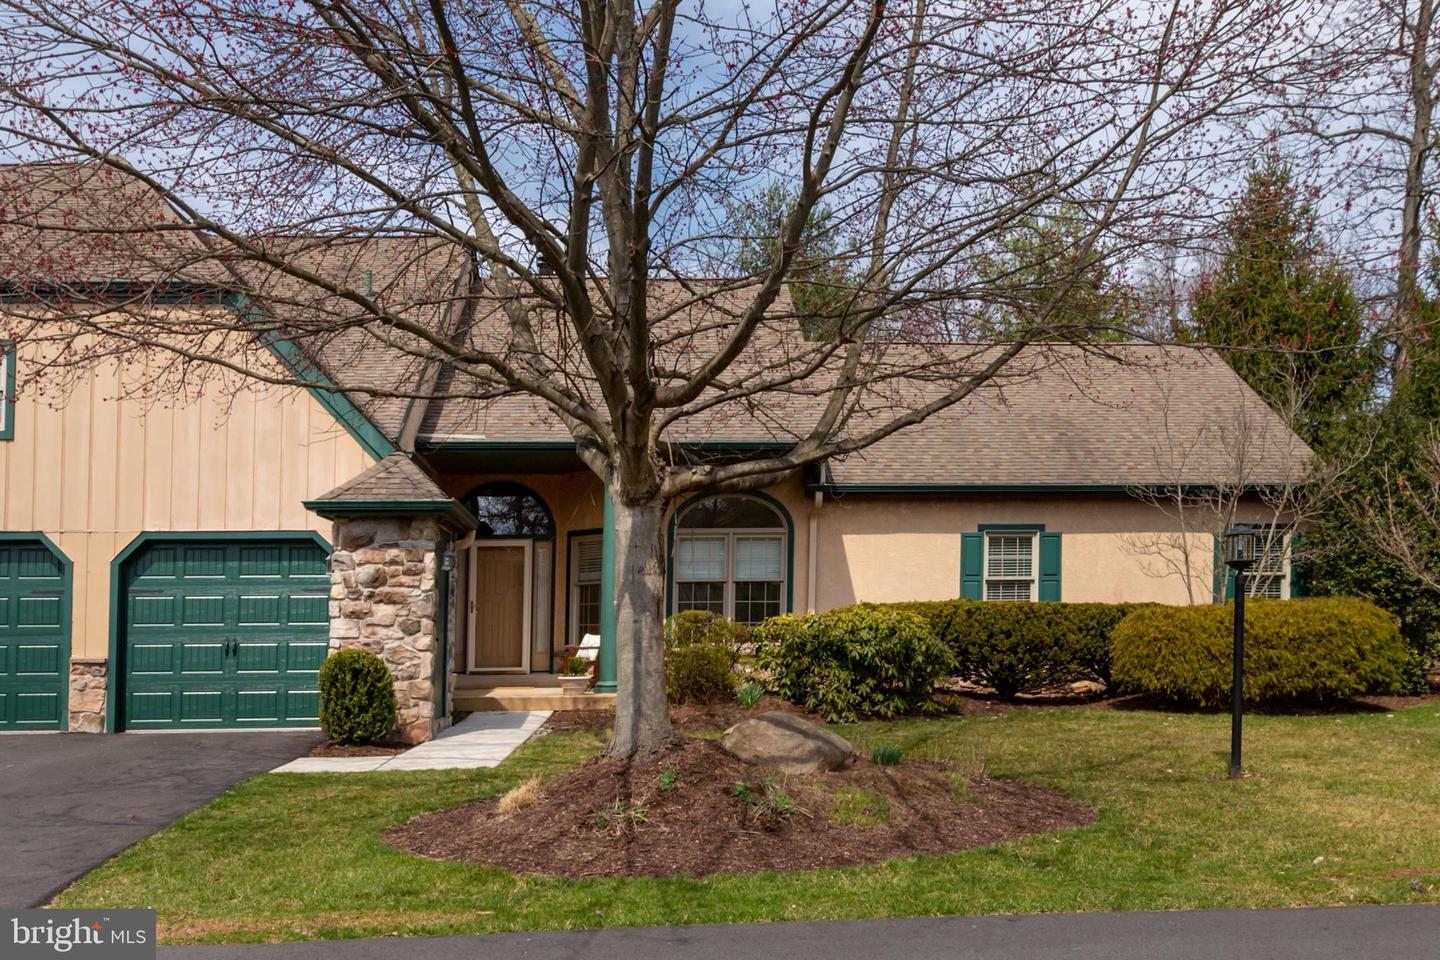 1248 Oakmont Lane West Chester, PA 19380